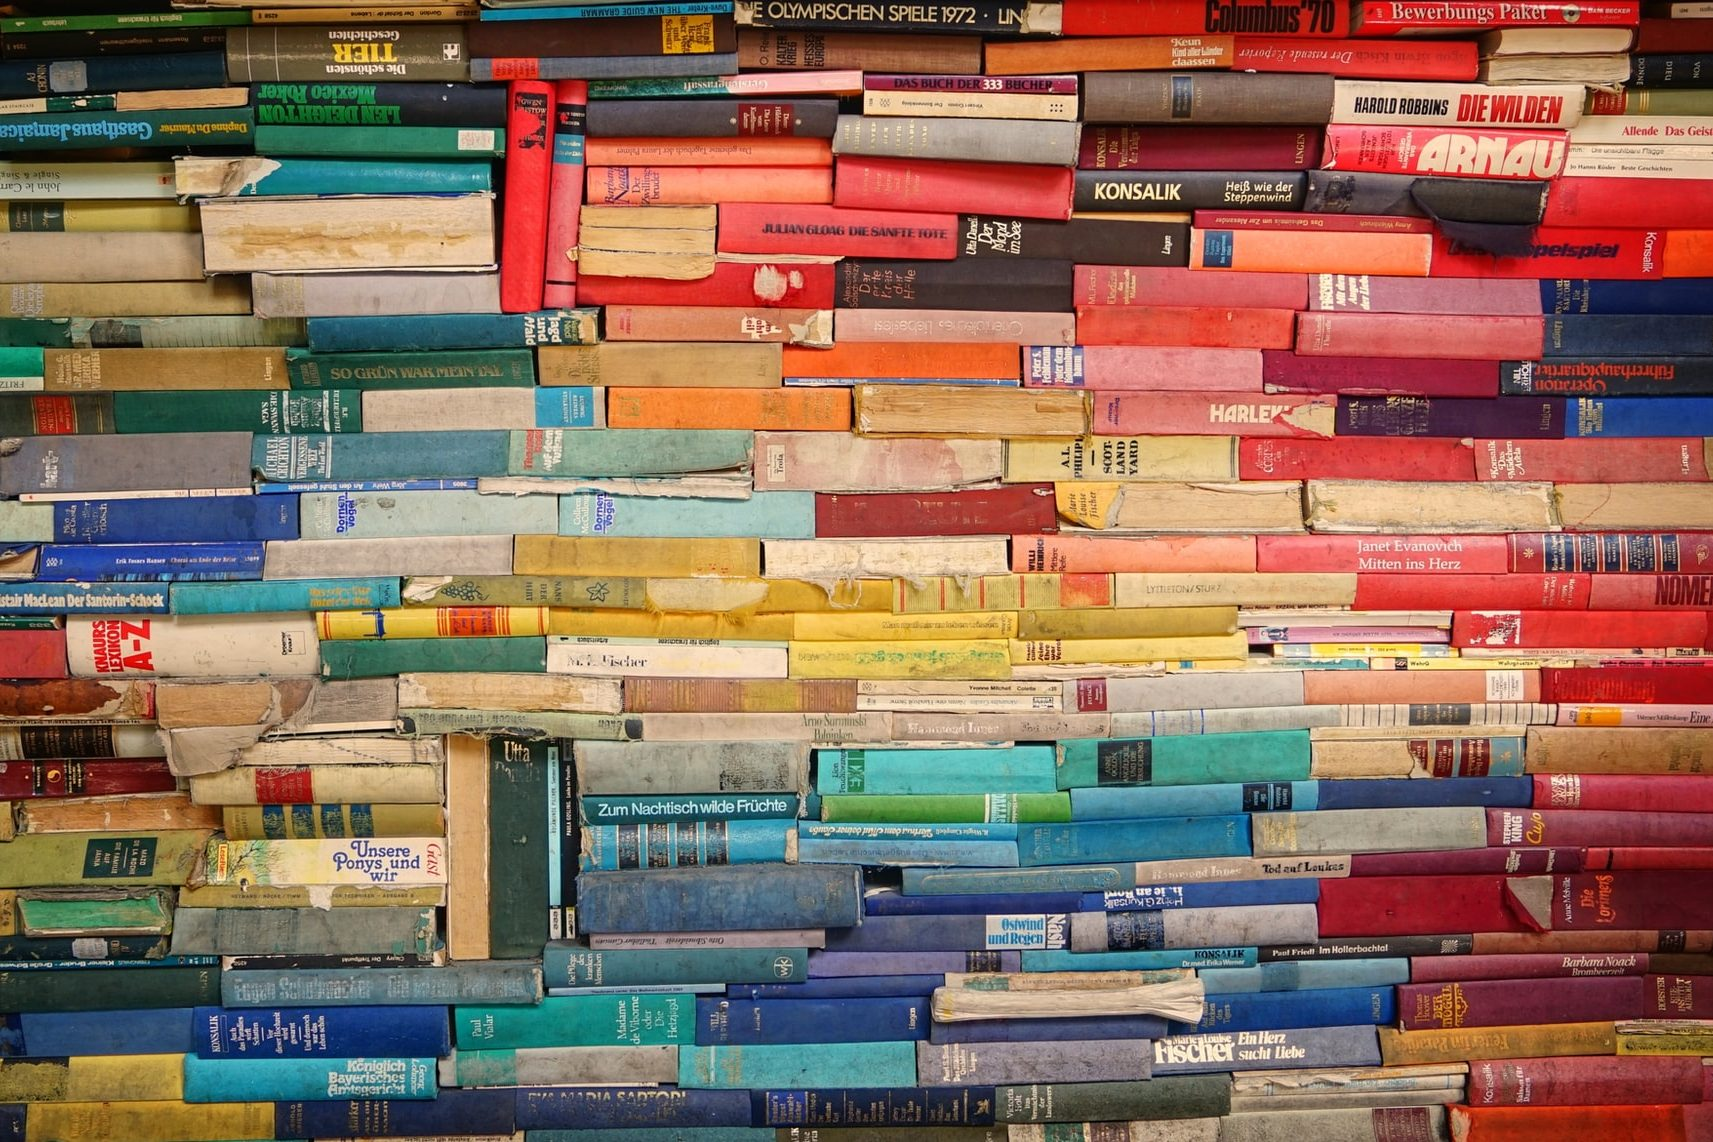 Writing for diversity: book spines arranged by color to resemble a rainbow.